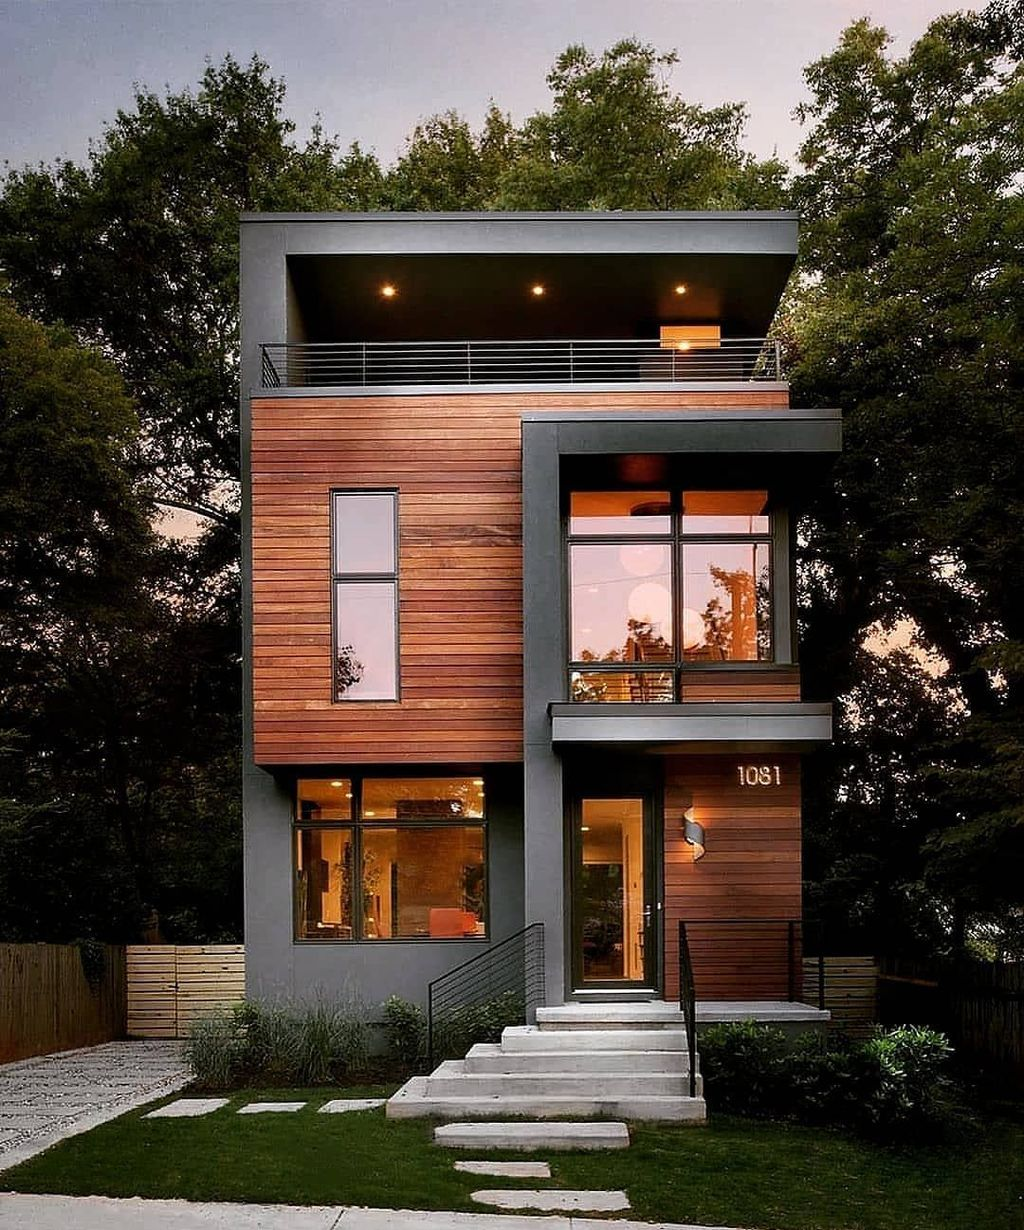 35 Awesome Small Contemporary House Designs Ideas To Try Small House Design Contemporary House Design Small House Exteriors